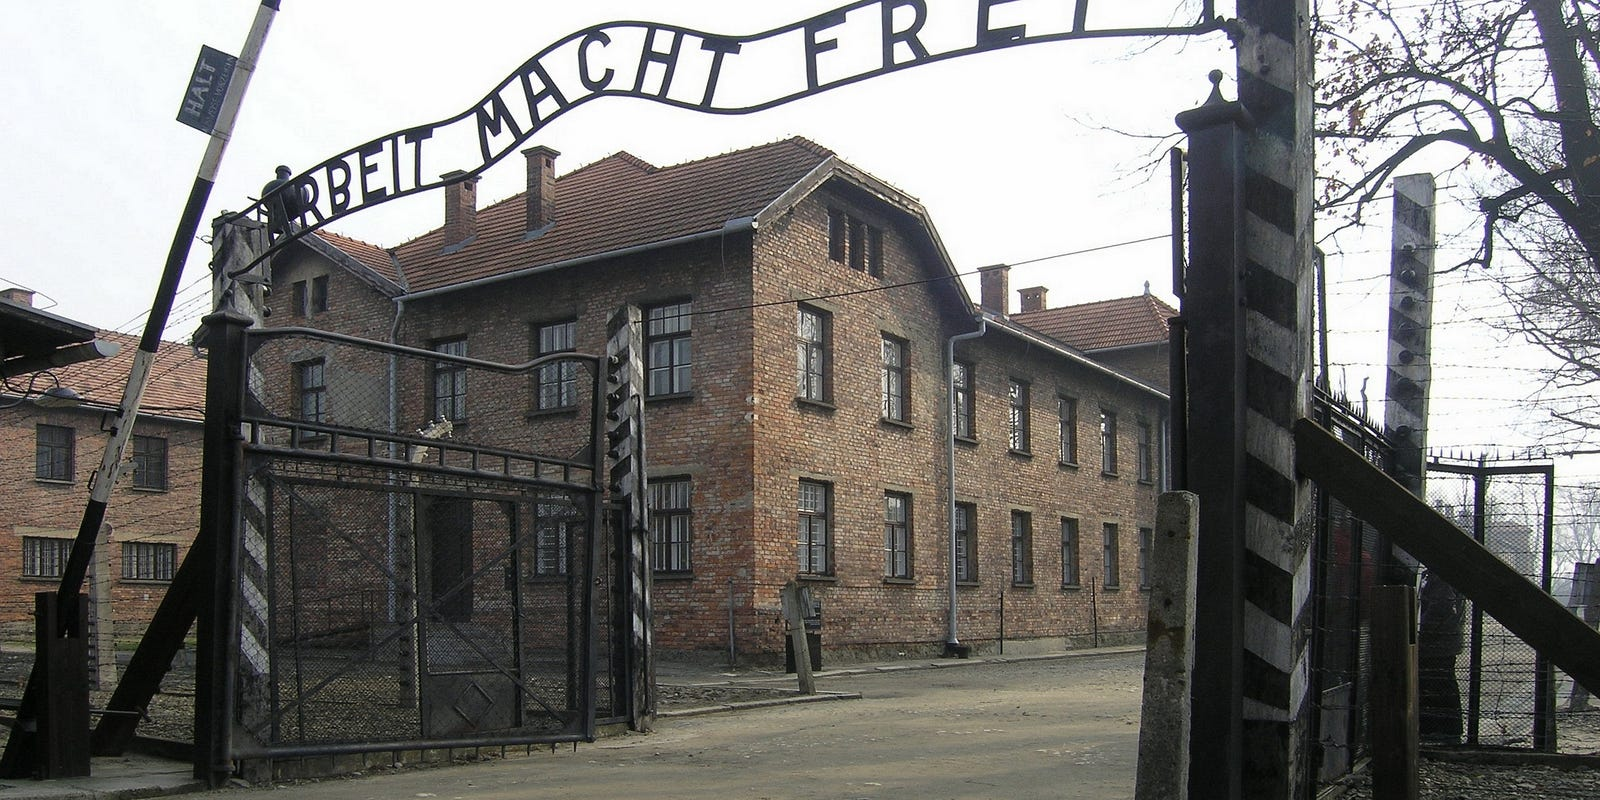 'Do something': Even from 6,000 miles away, Auschwitz camp grimly warns us